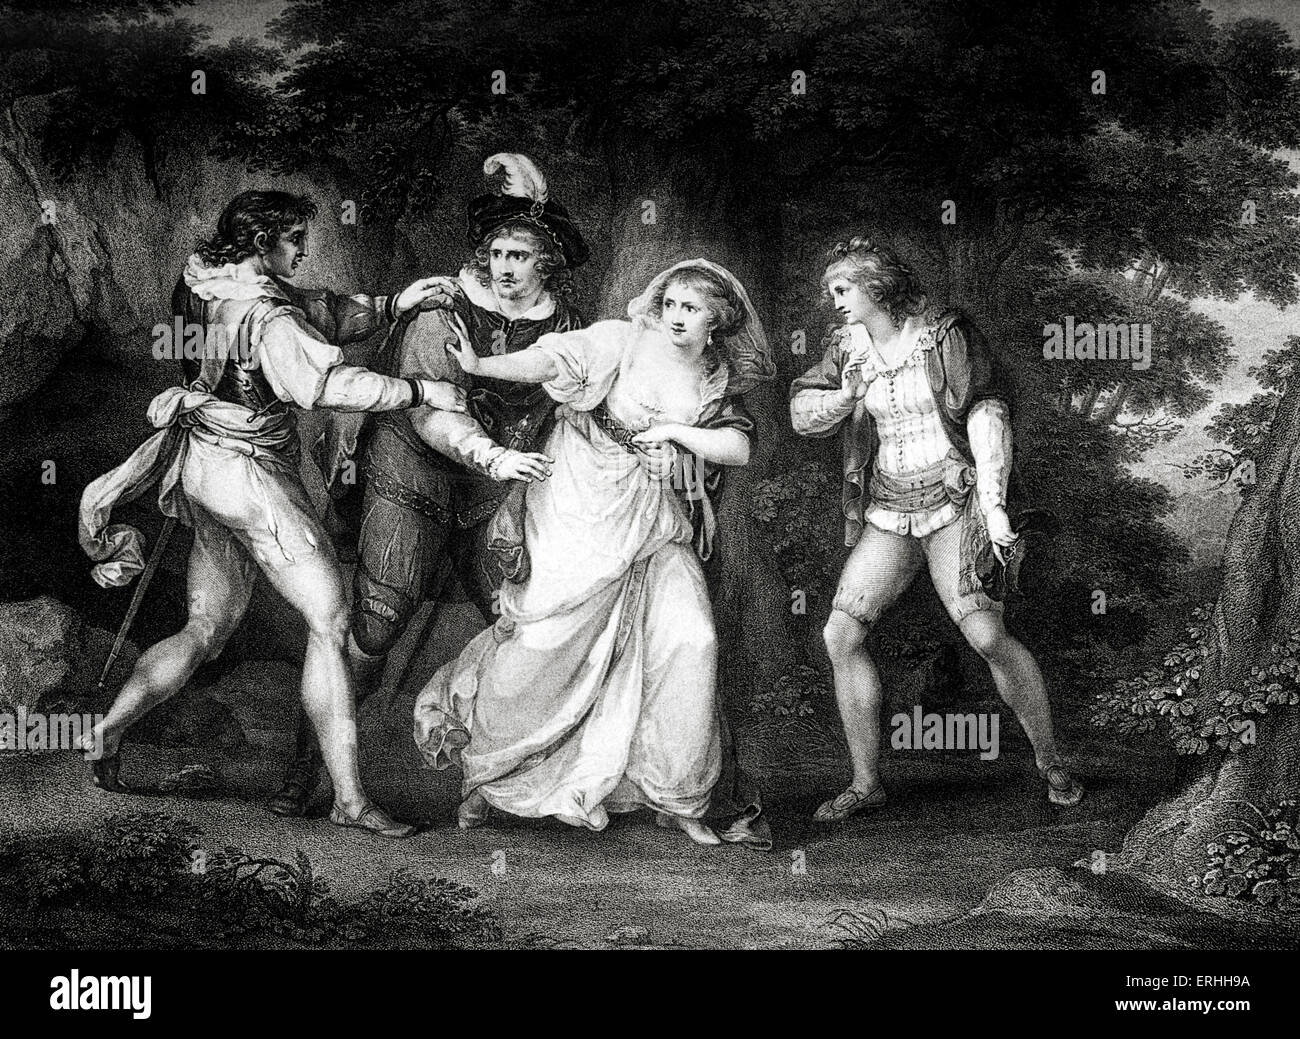 William Shakespeare 's play The Two Gentlemen of Verona  -  Act V Scene IV : Valentine , Proteus , Silvia and - Stock Image